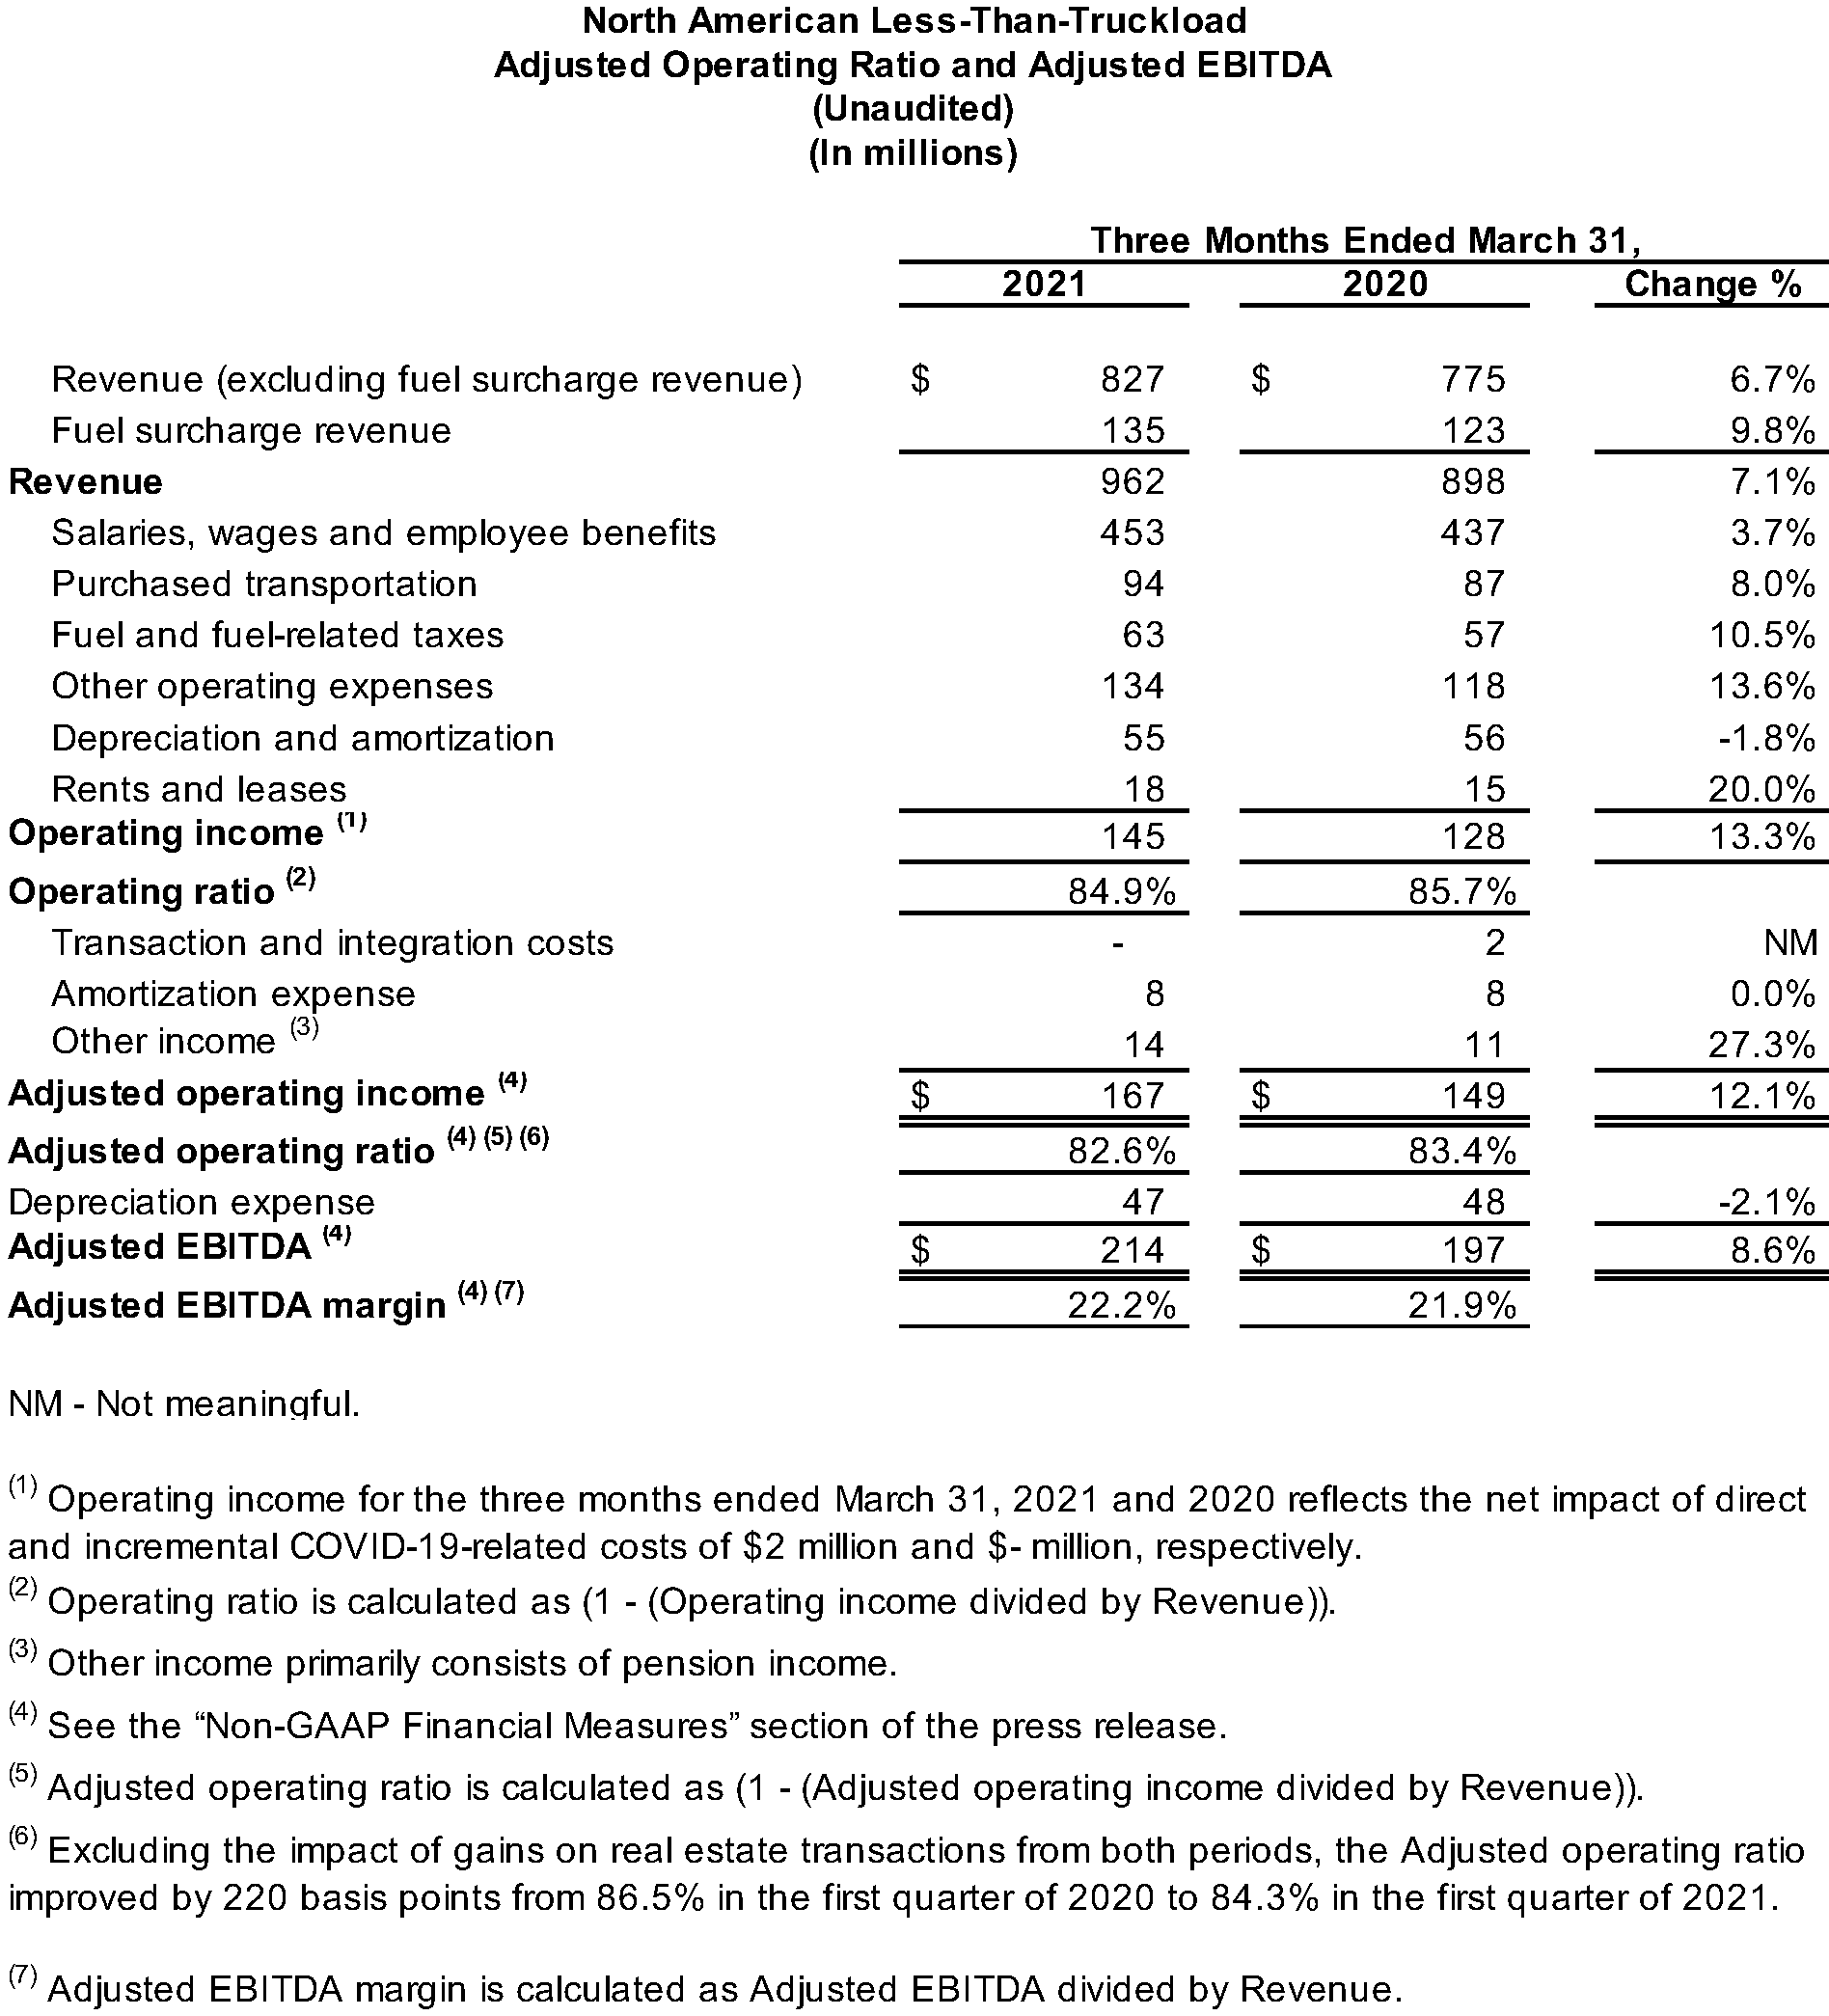 North American LTL Adjusted Operating Ratio and Adjusted EBITDA (Unaudited)